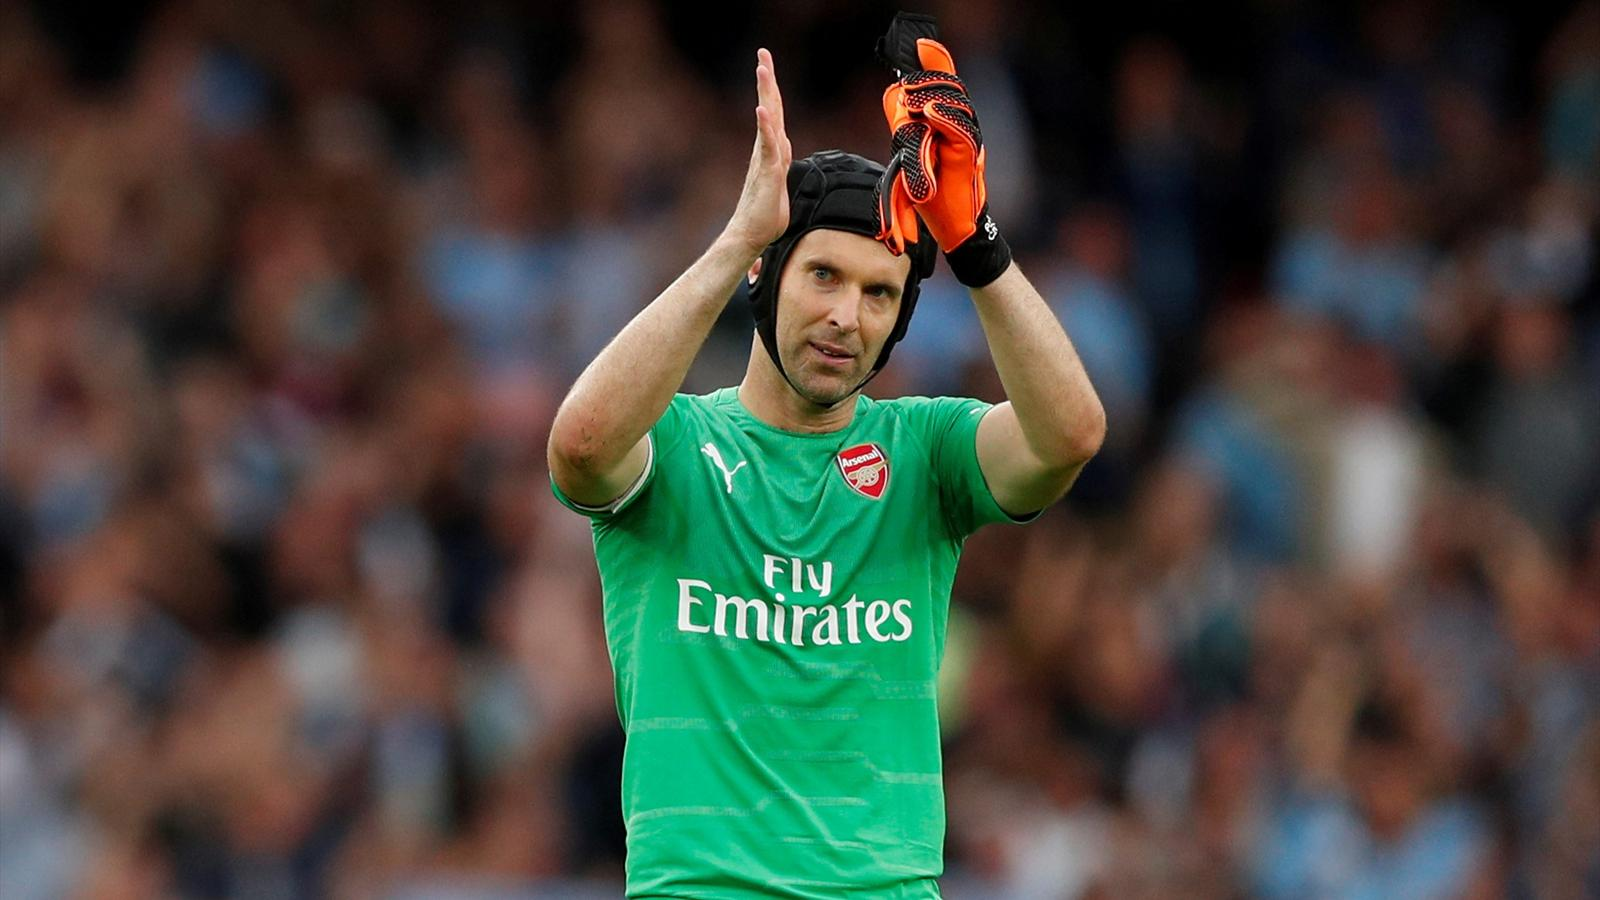 Arsenal Goalkeeper Petr Cech To Retire At